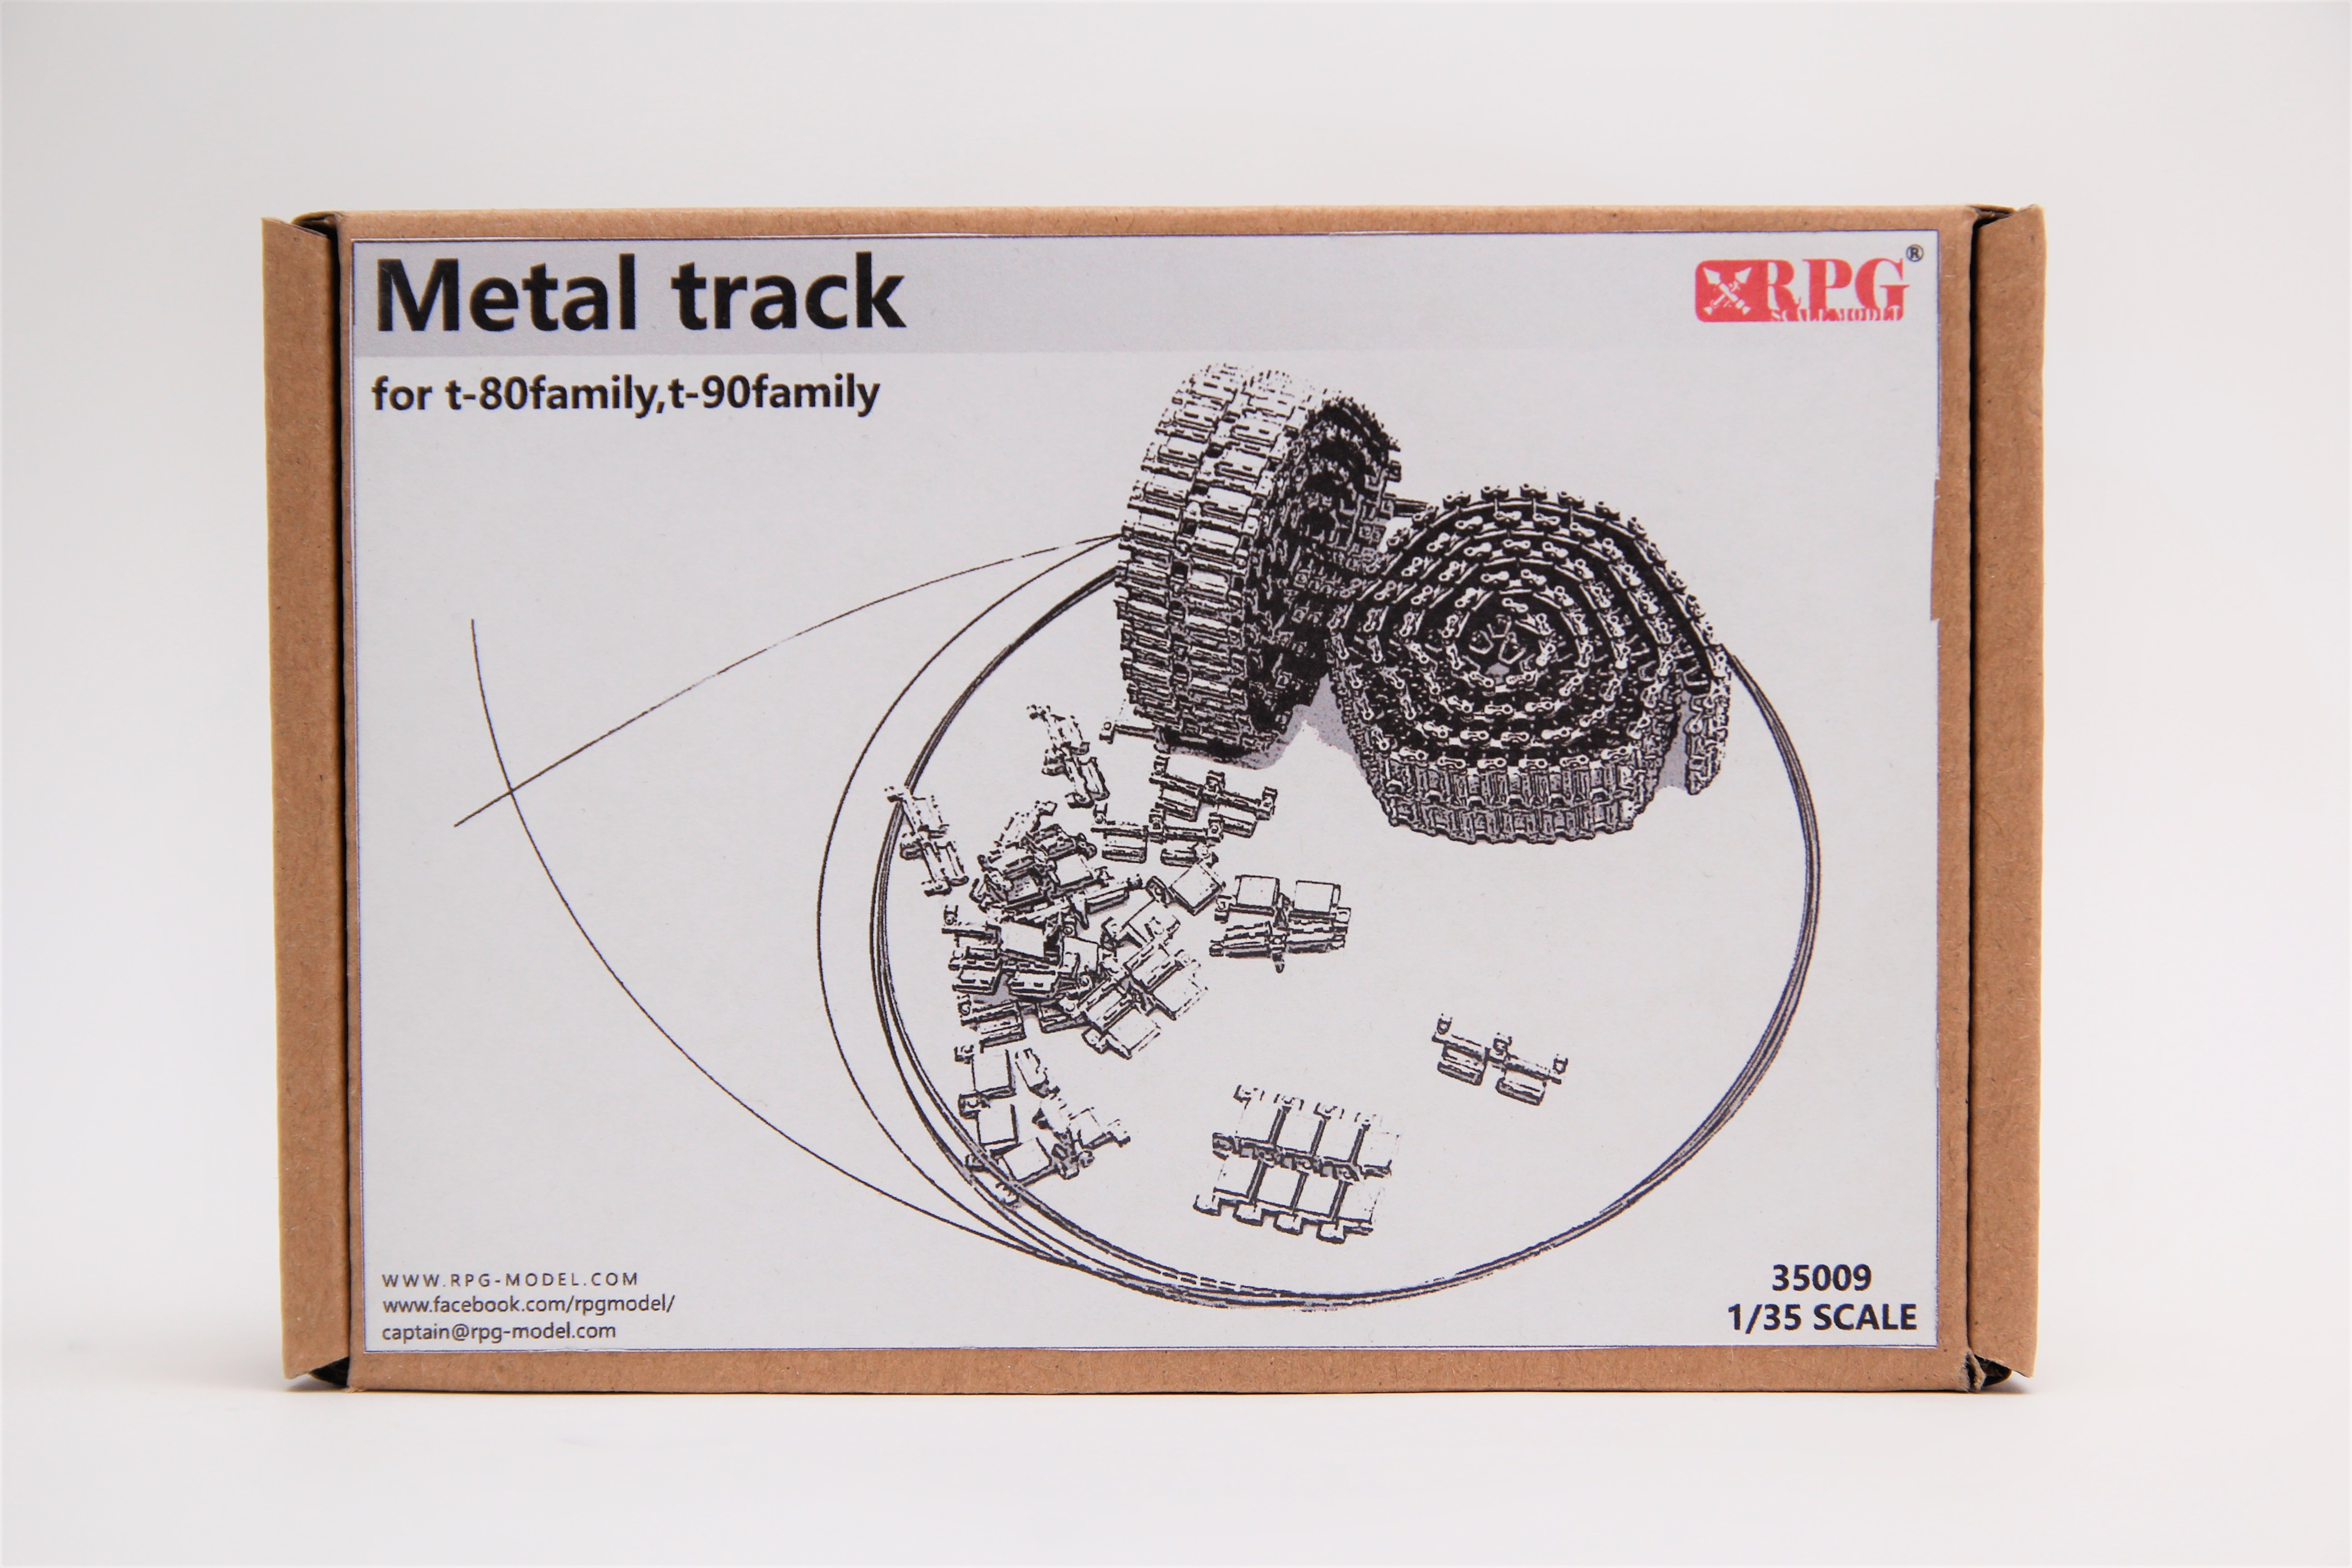 RPG 1/35 metal track for T-80 family, T-90 family